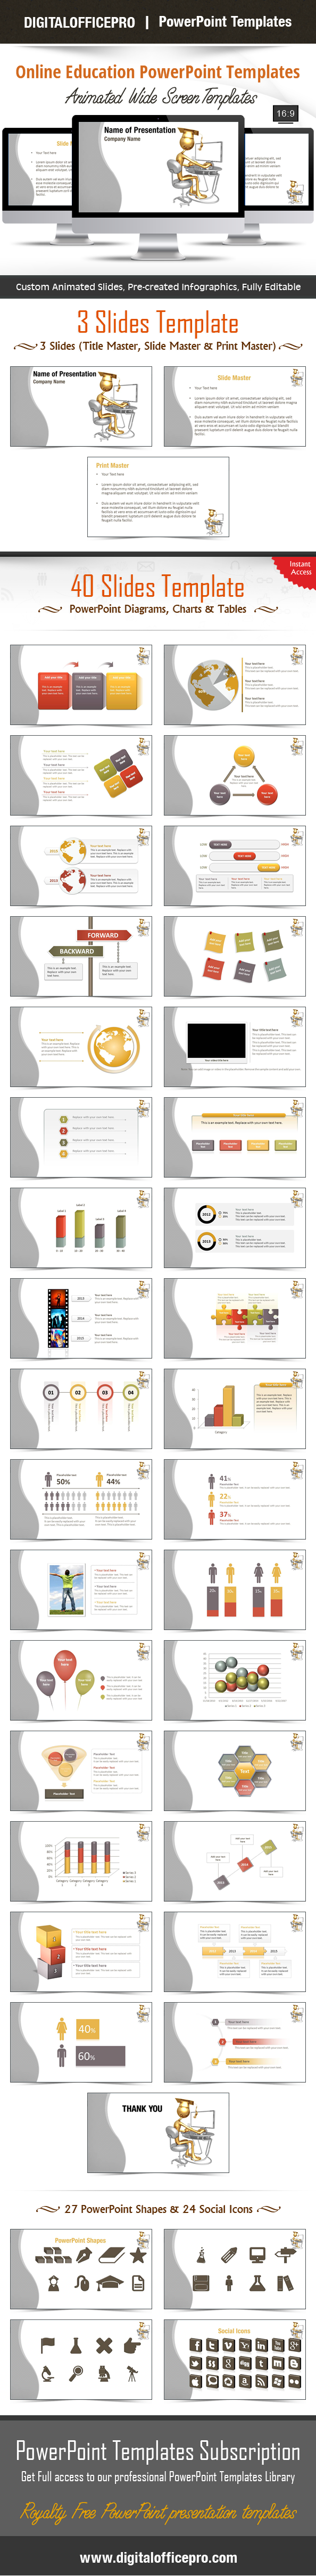 Impress and Engage your audience with Online Education PowerPoint Template and Online Education PowerPoint Backgrounds from DigitalOfficePro. Each template comes with a set of PowerPoint Diagrams, Charts & Shapes and are available for instant download.